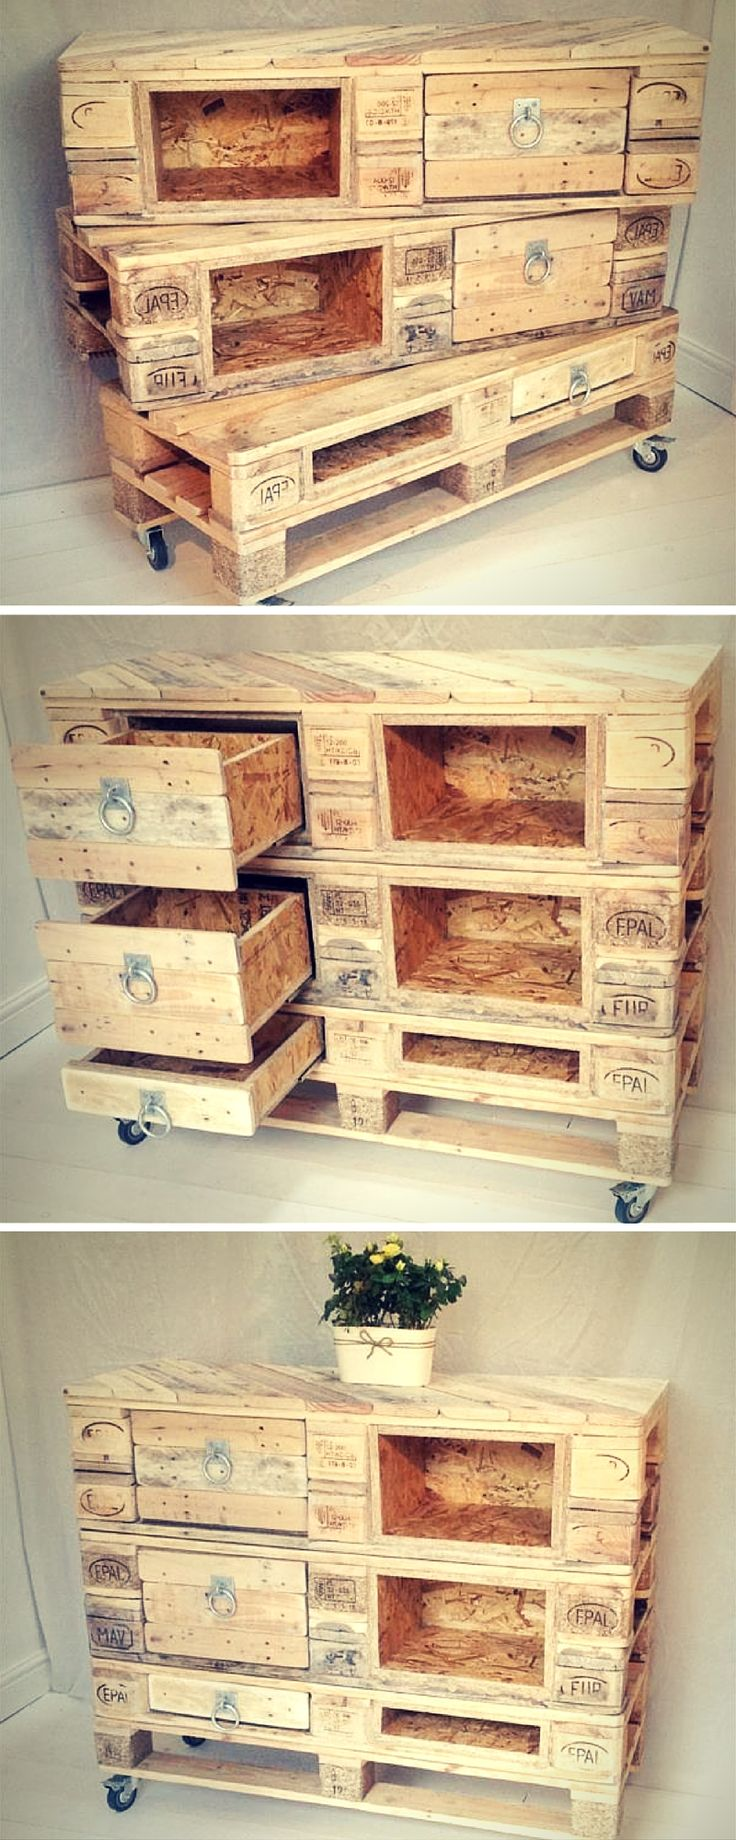 Best 25+ Pallet chest ideas on Pinterest | Pallet projects, Wood ...